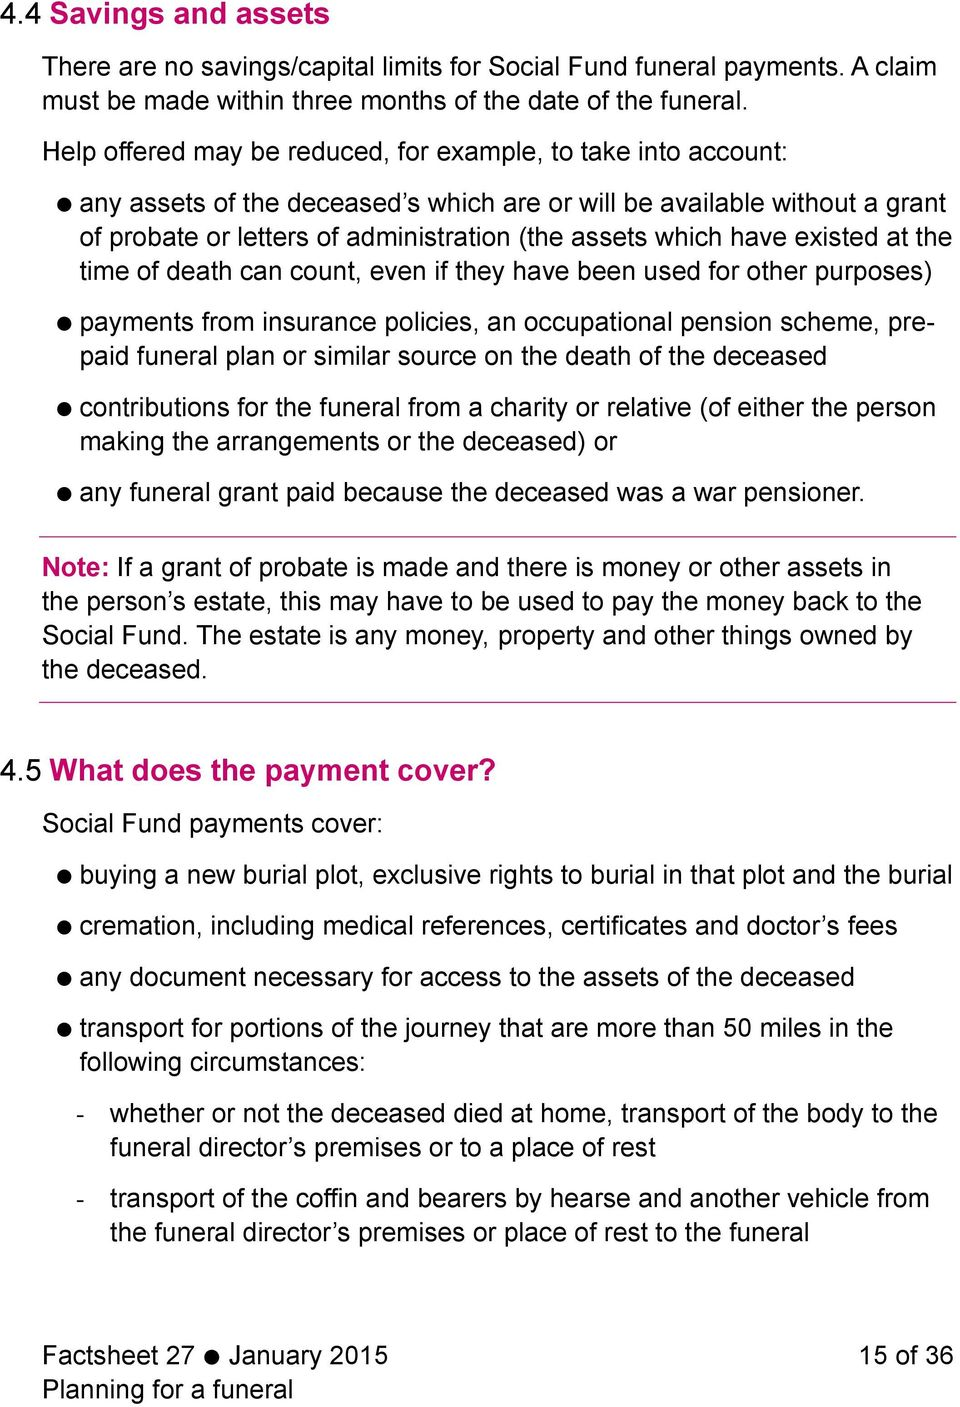 have existed at the time of death can count, even if they have been used for other purposes) payments from insurance policies, an occupational pension scheme, prepaid funeral plan or similar source